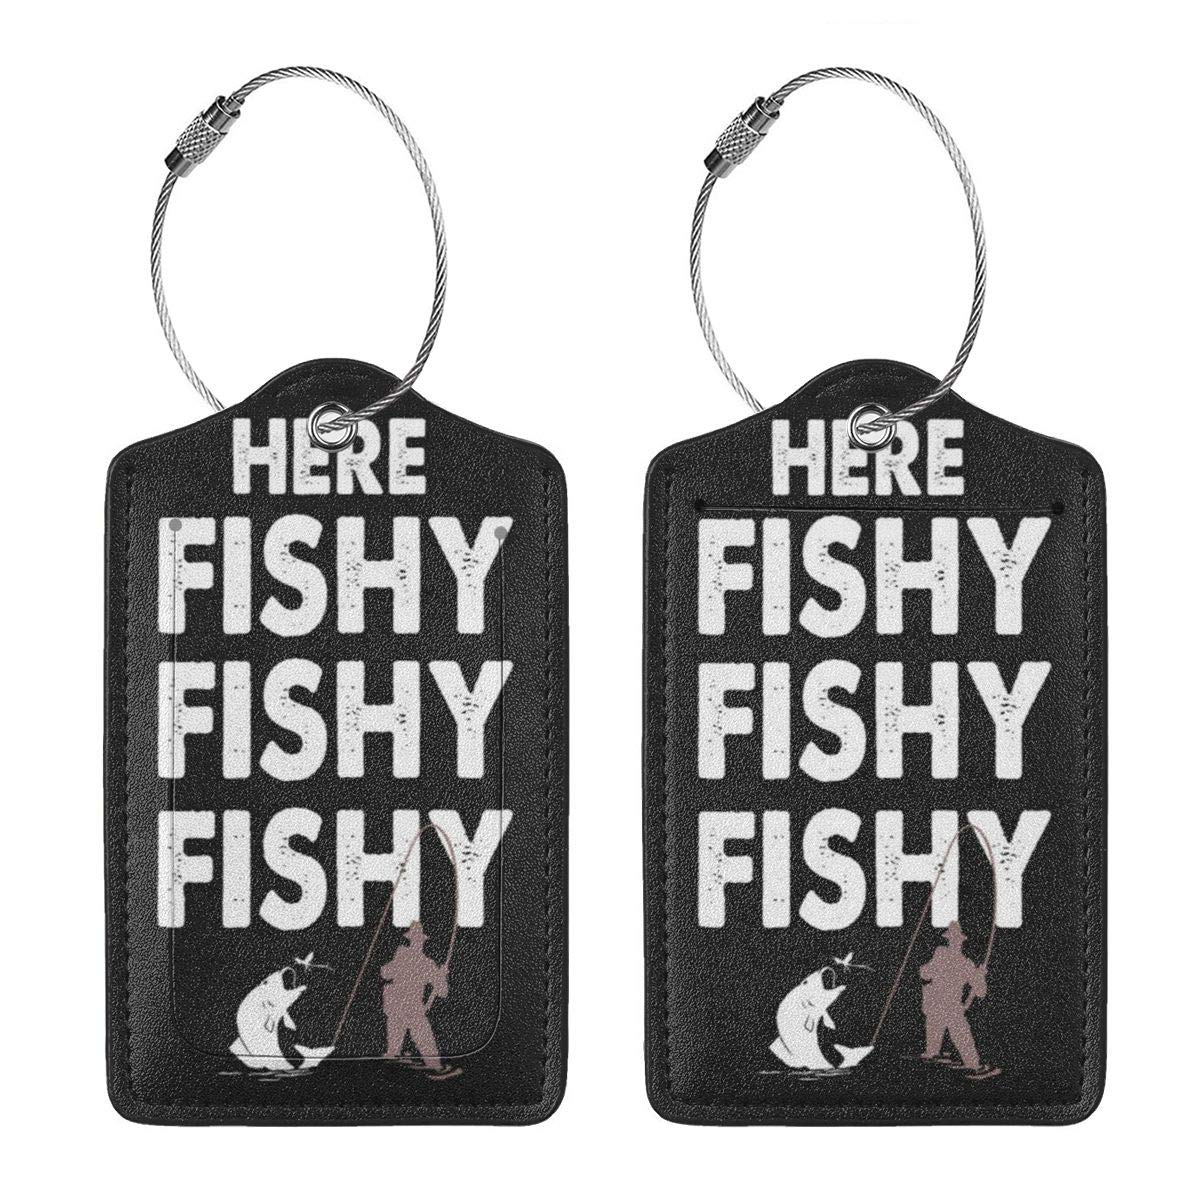 GoldK Fishing Fishing Leather Luggage Tags Baggage Bag Instrument Tag Travel Labels Accessories with Privacy Cover